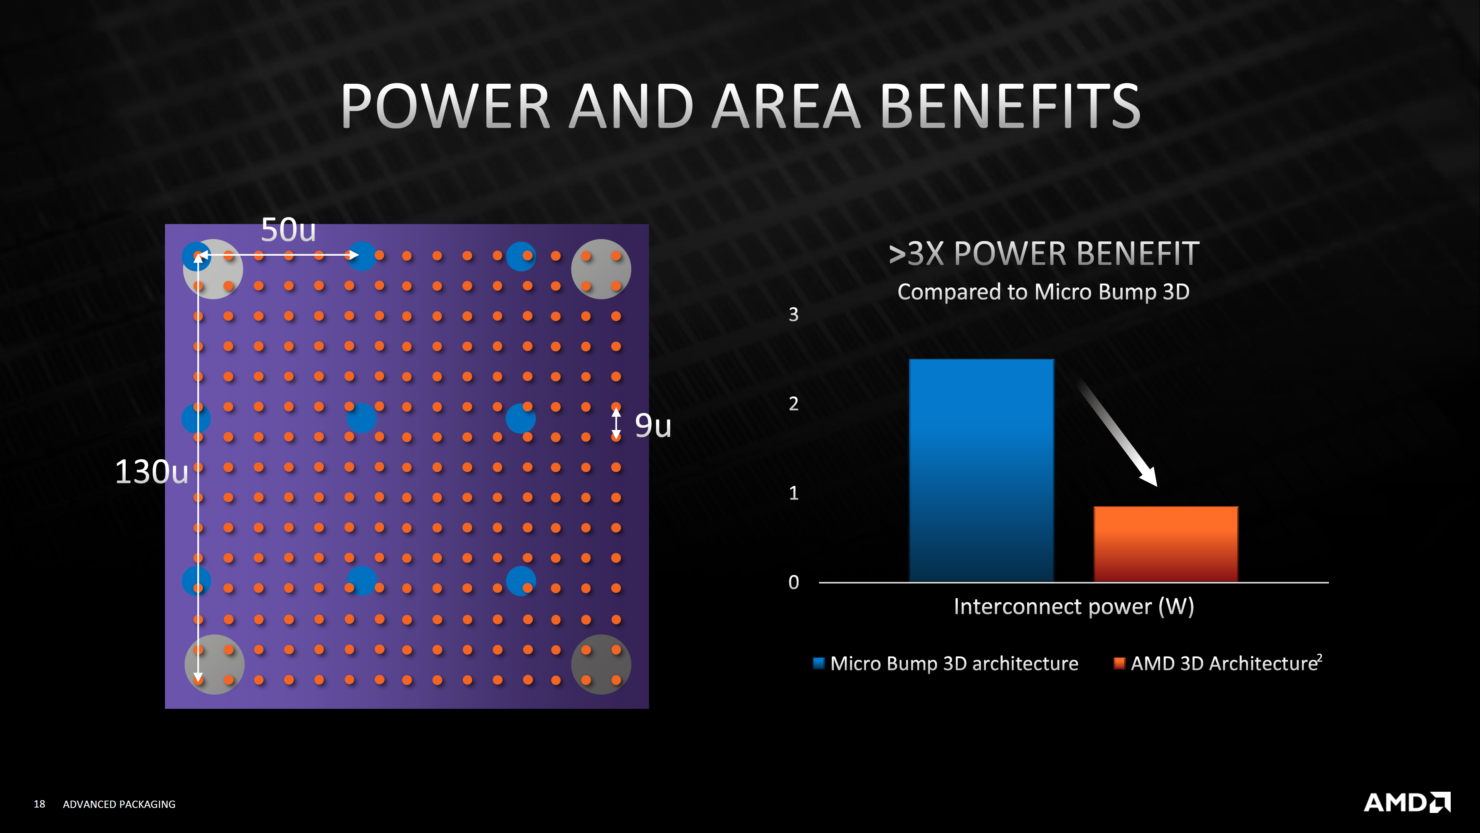 amd-advanced-3d-chiplet-packaging-3d-stacking-technologies-3d-v-cache-_17